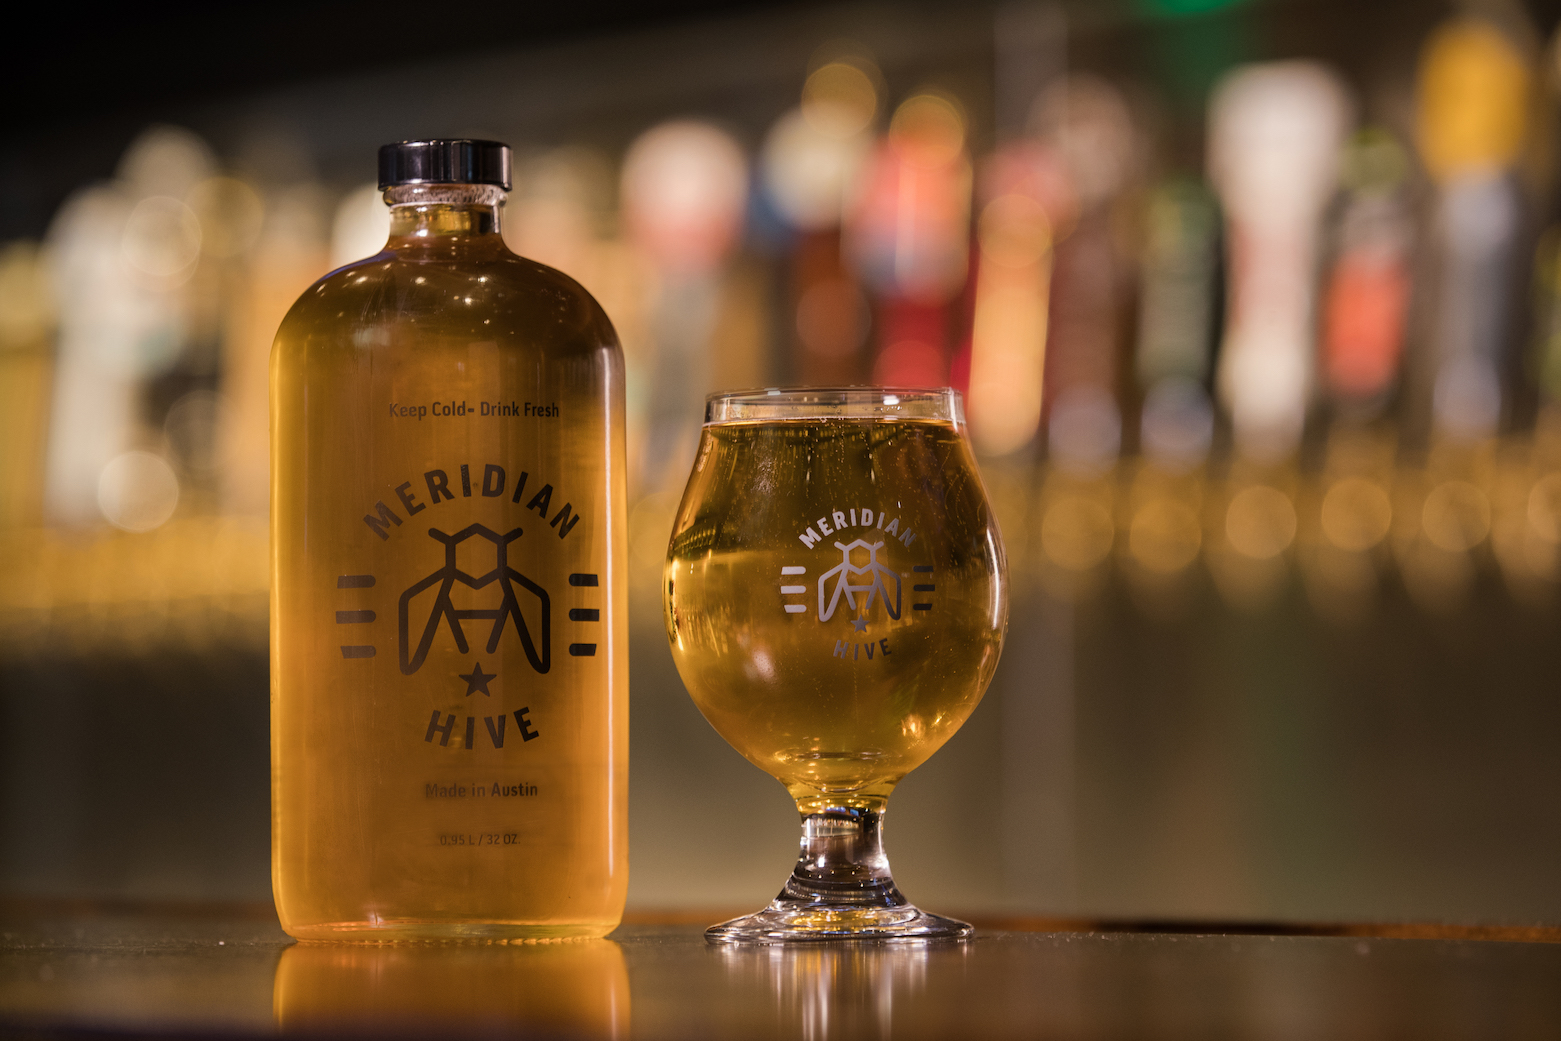 MERIDIAN HIVE - Complimentary local and ethical drinks by Meridian Hive!